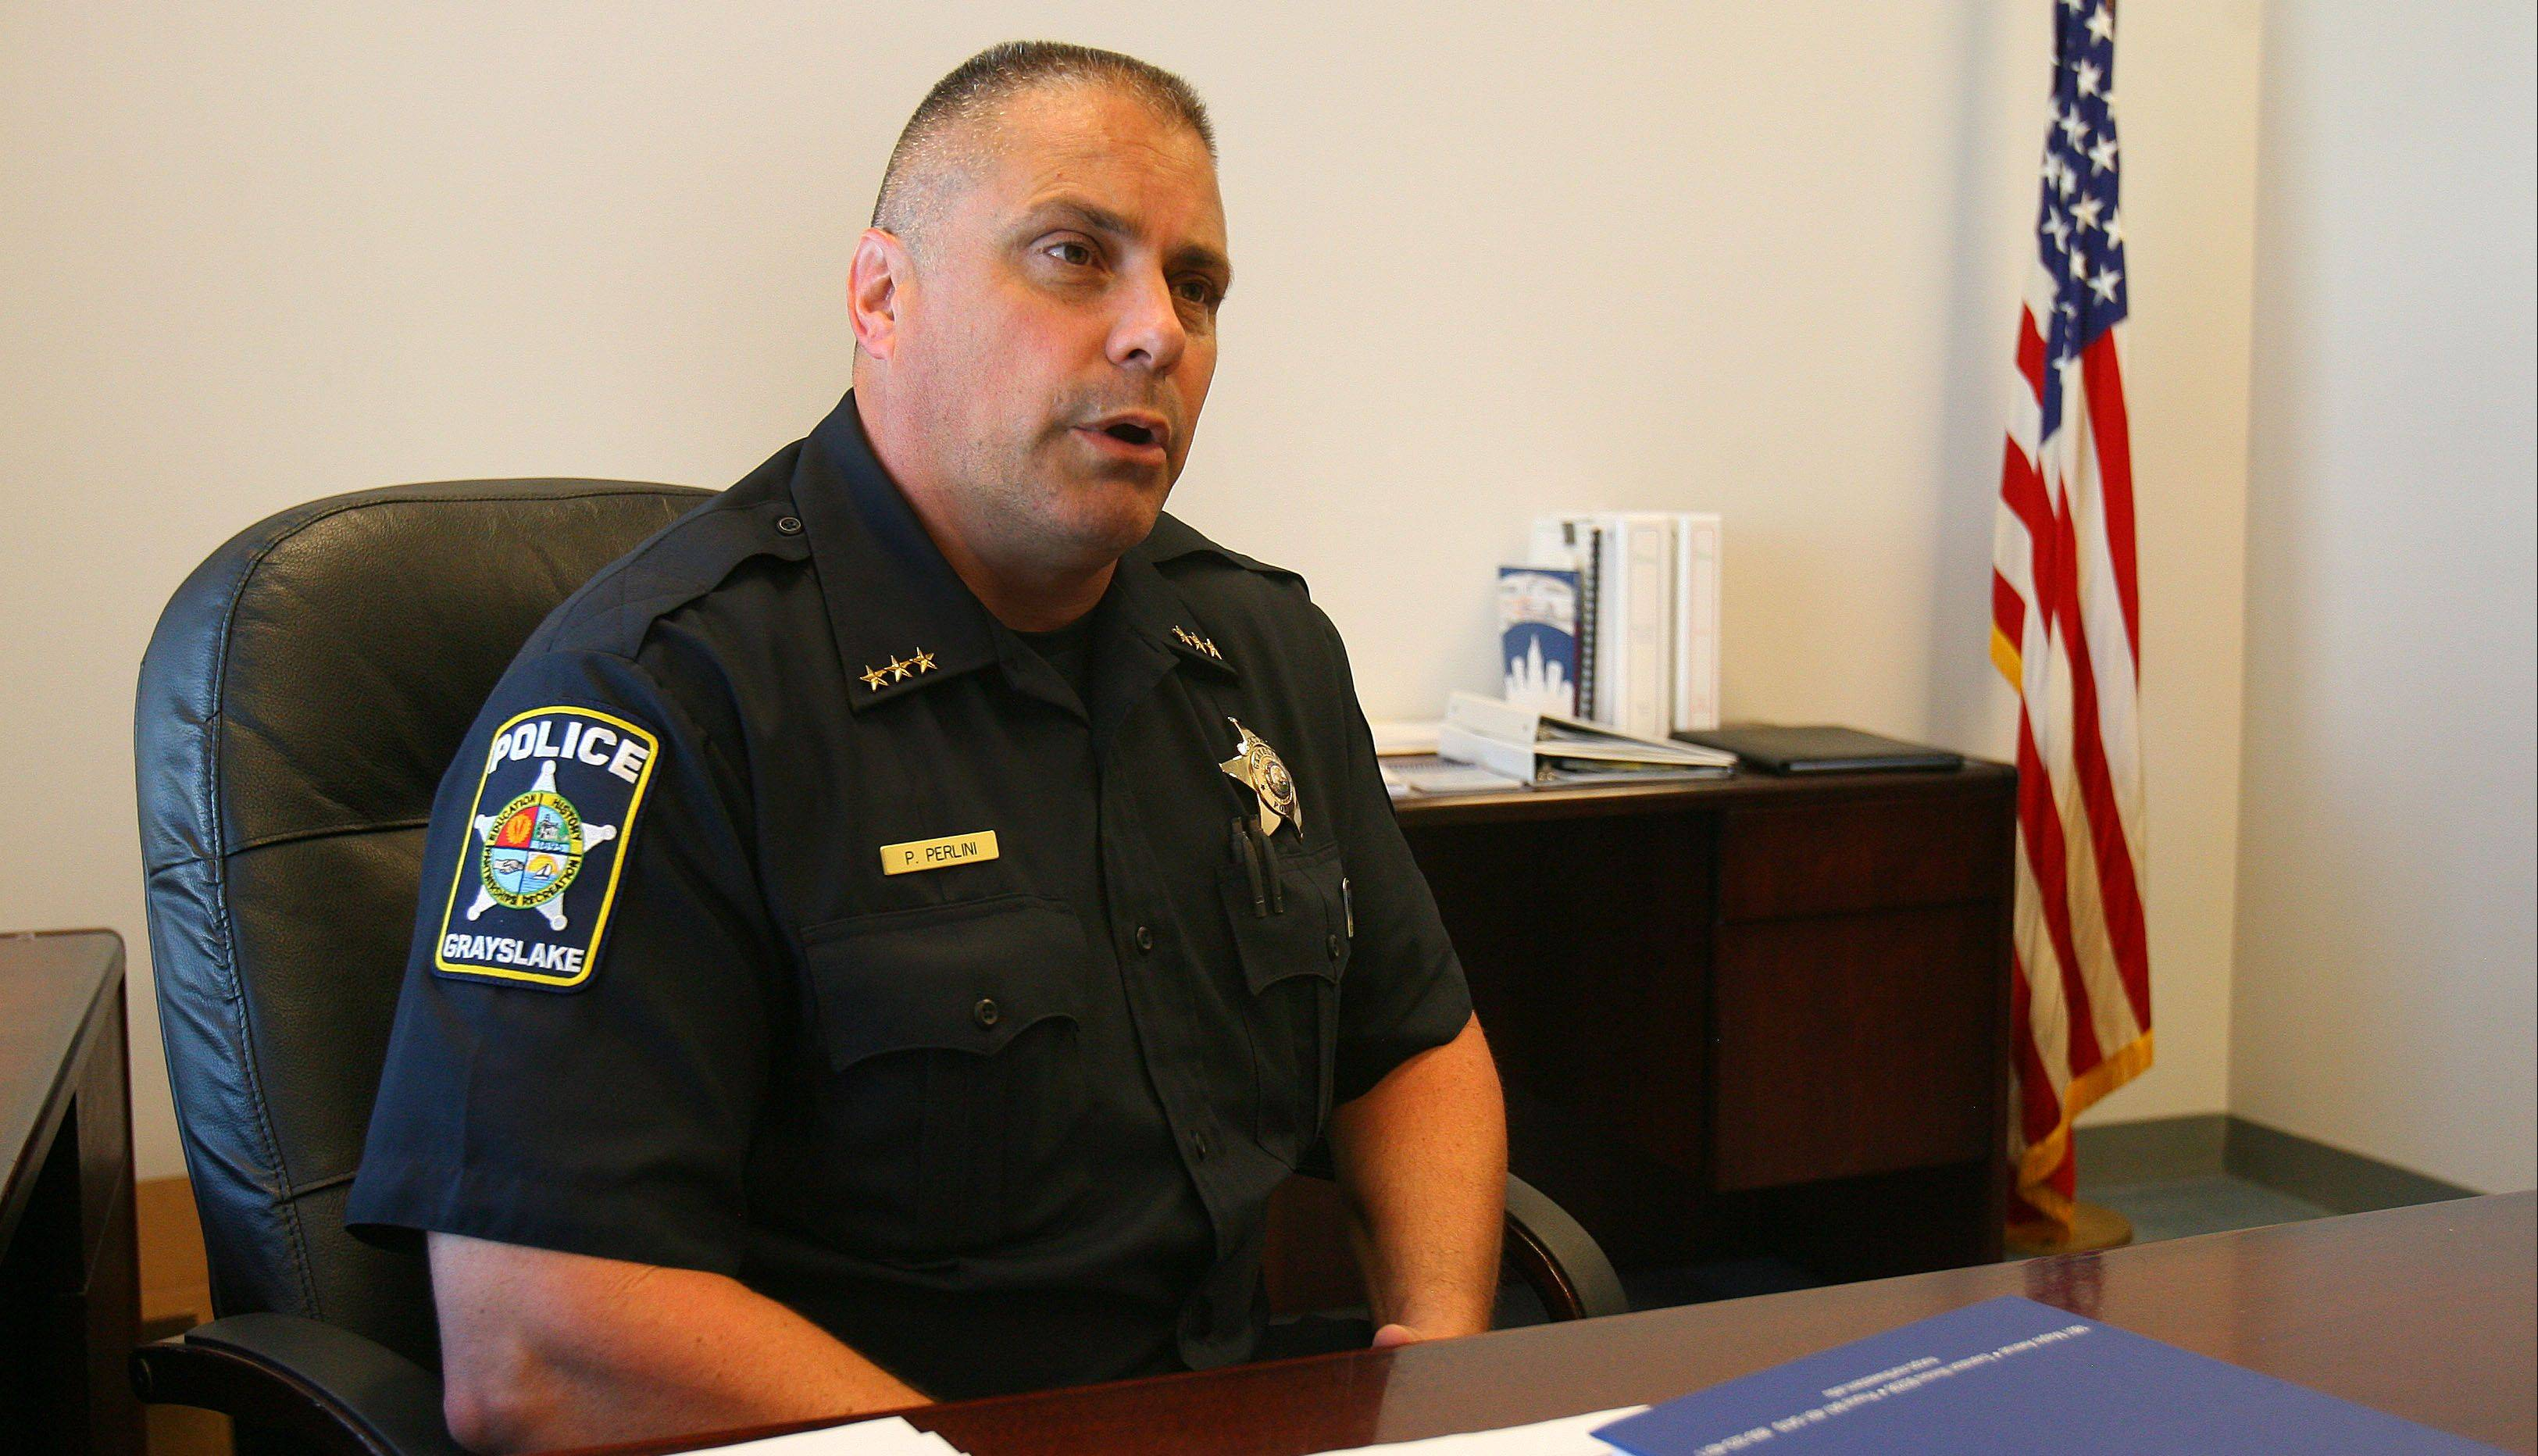 Phillip Perlini was sworn in last week as Grayslake's police chief.